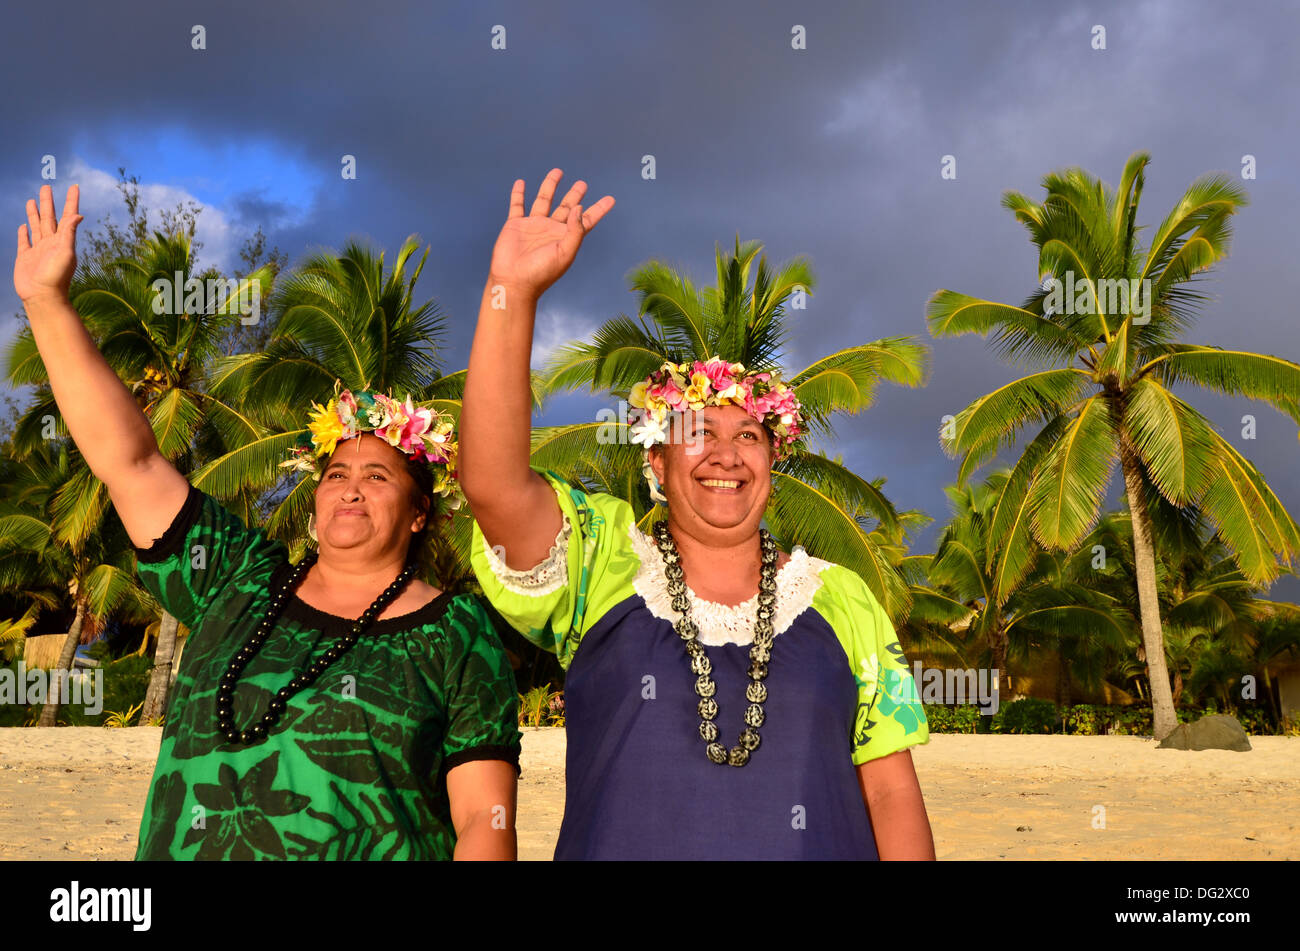 Portrait of two happy mature Polynesian Pacific islanders women on tropical beach with palm trees in the background. - Stock Image